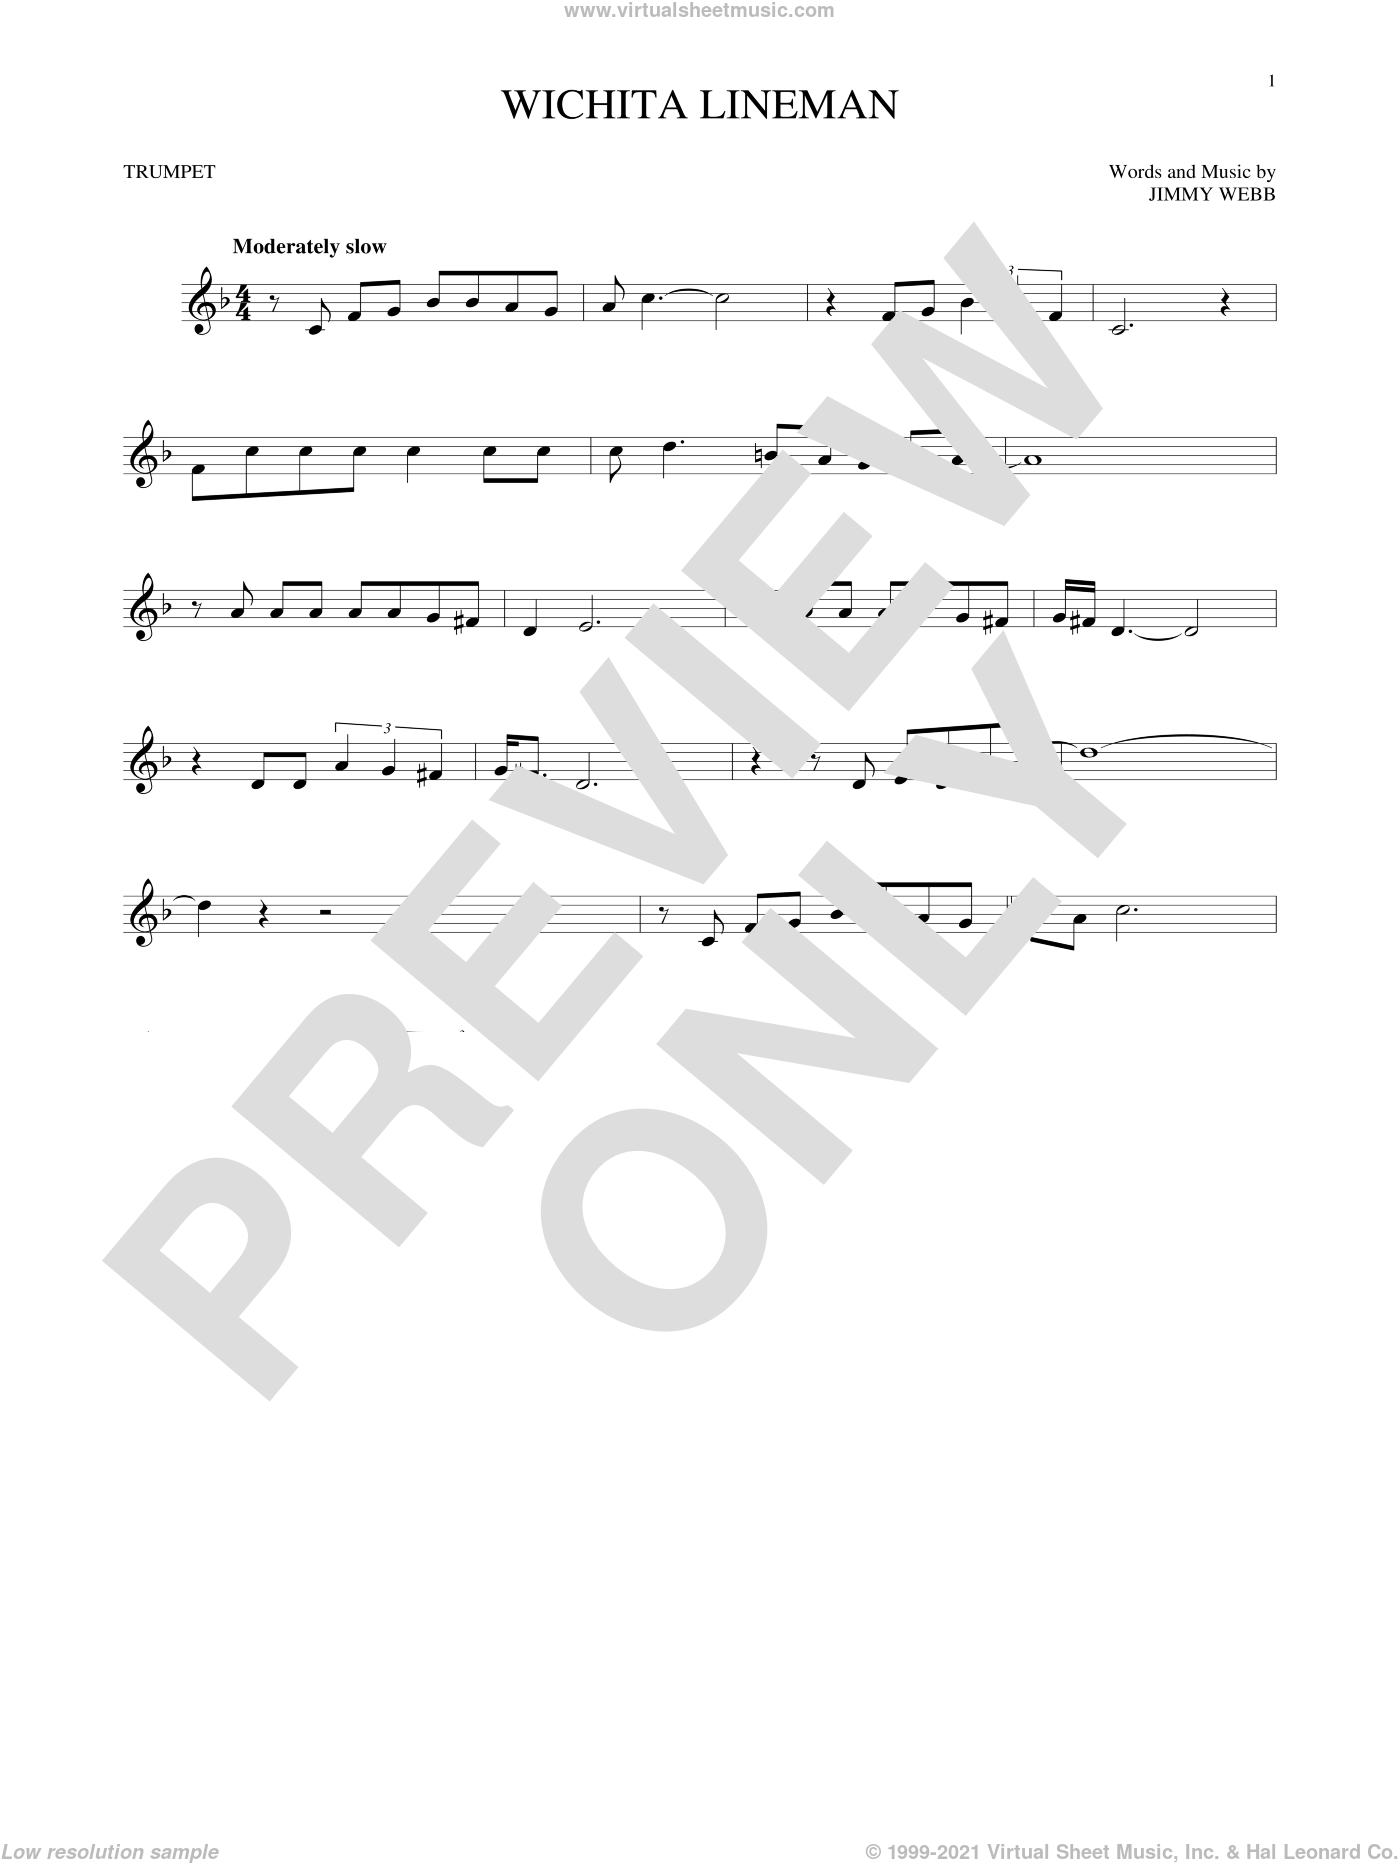 Wichita Lineman sheet music for trumpet solo by Glen Campbell and Jimmy Webb, intermediate skill level